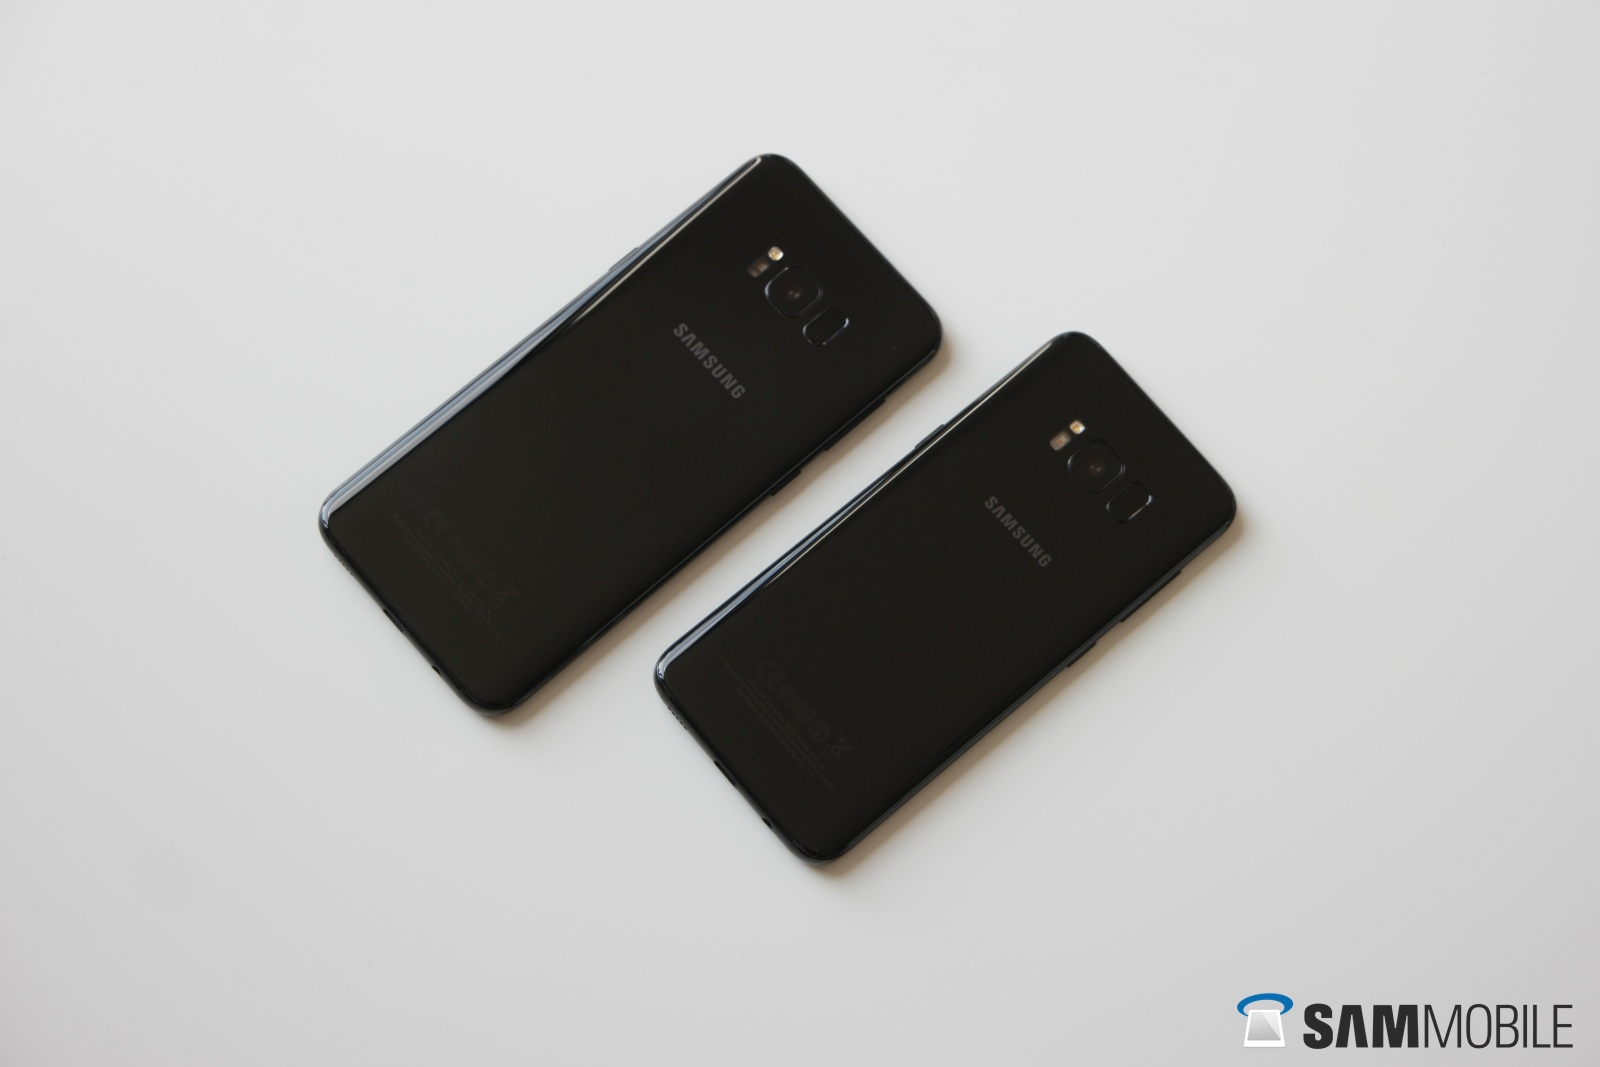 Galaxy S8 and Galaxy S8+ review: Samsung brings us the future, but